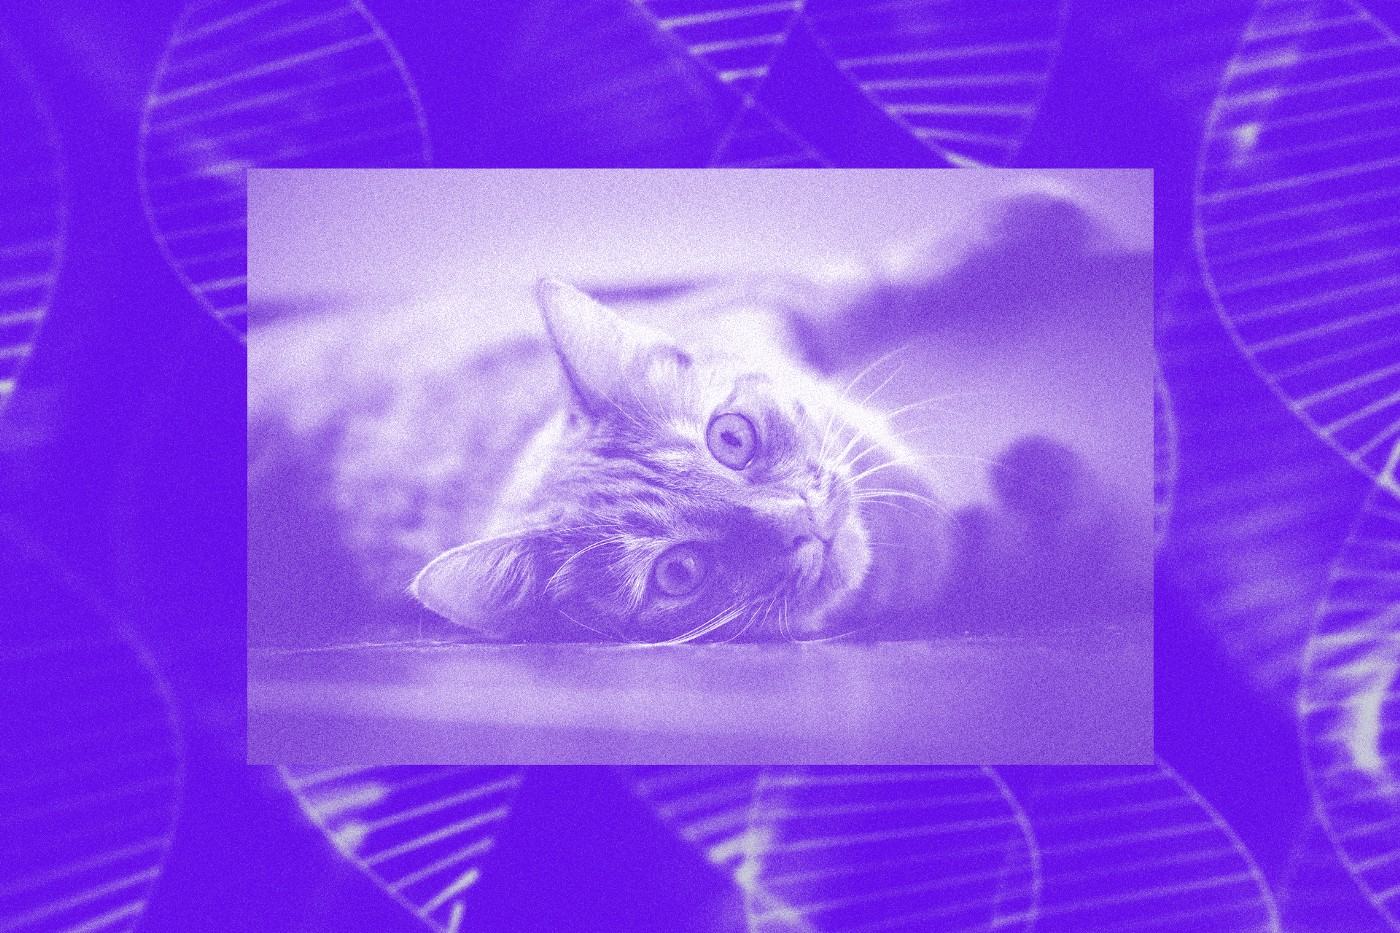 A photo illustration of a cat lying on its side, juxtaposed against a background showing DNA strands.